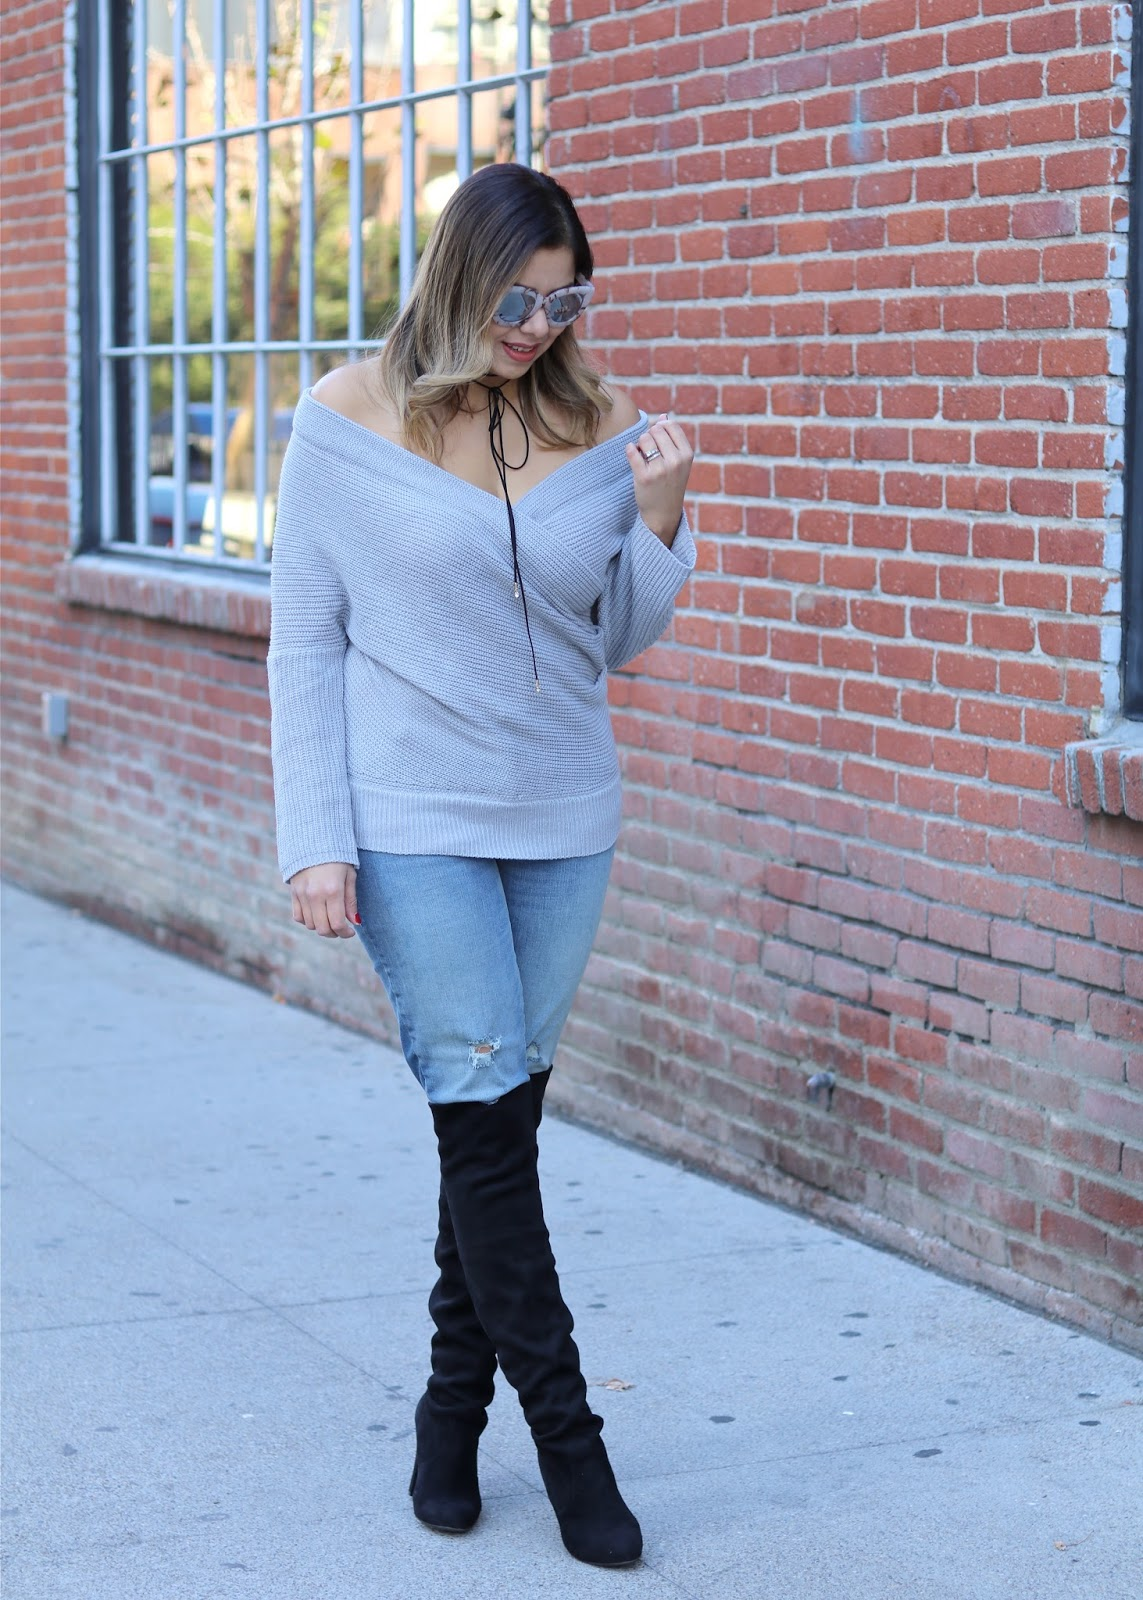 how to wear over the knee boots, how to wear a choker, chic over the knee boots outfit